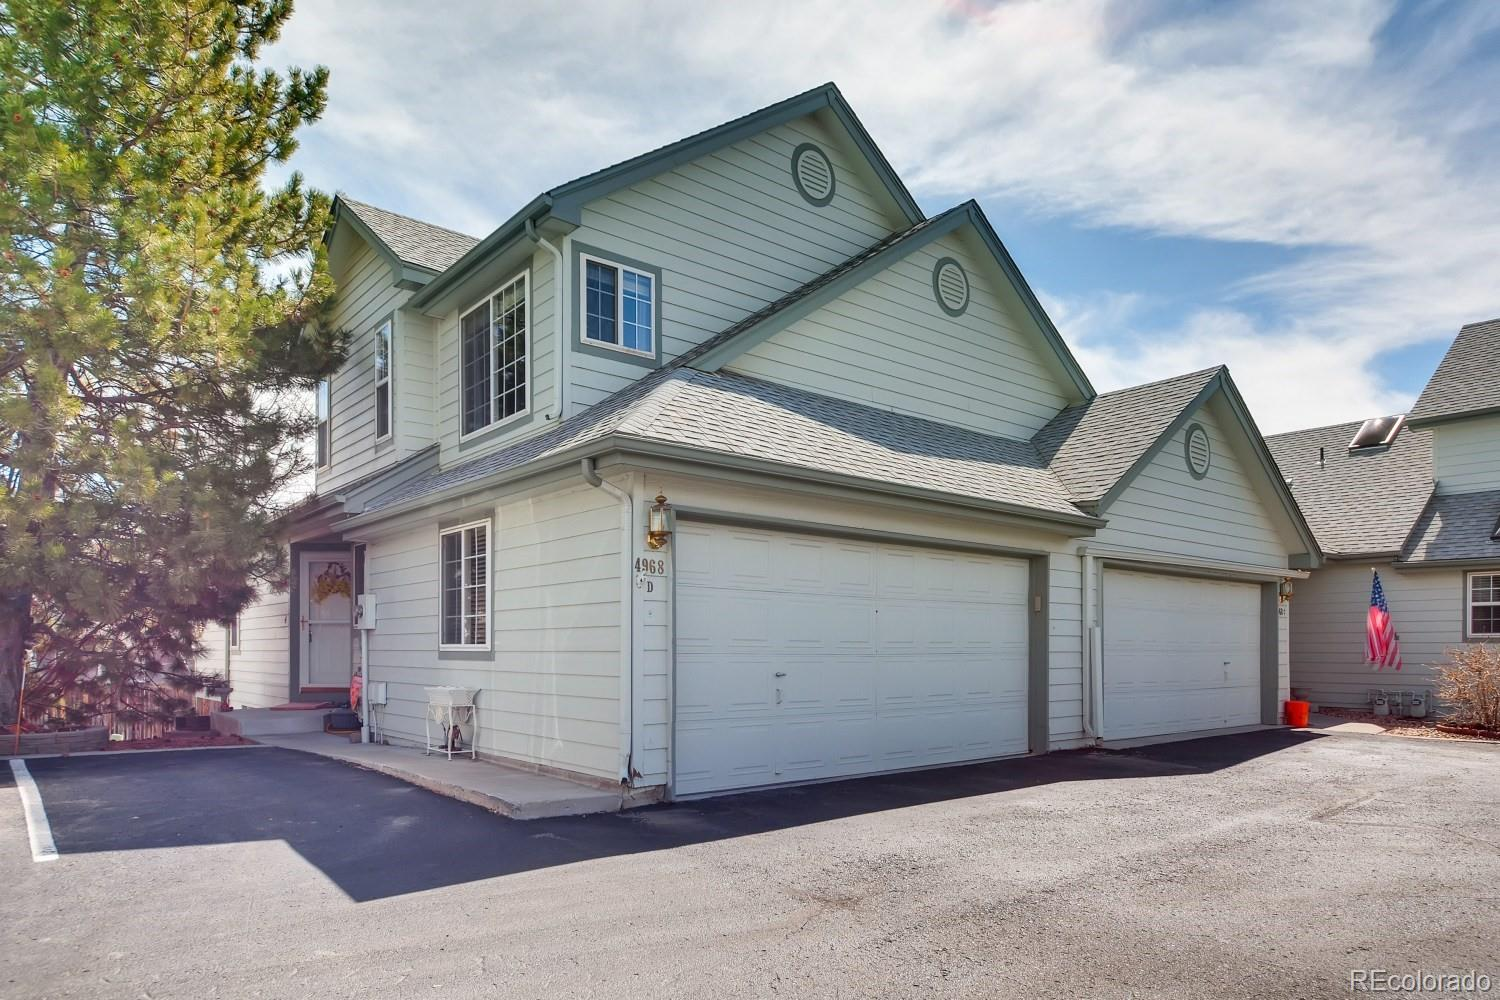 Pre-sale Inspection report available.   3D tour at  https://listing.virtuance.com/listing/4968-s-nelson-street-d-littleton-colorado/   Updated and immaculate 2 story in very well maintained gated community situated on a prime lot location. Newer appliances and granite!  Updated bathrooms! Open floor plan with formal dining room and plenty of storage.  Huge master suite with flex space for home office, home gym or nursery, in addition to the spacious walk in master closet.  Vaulted ceilings and very light and bright.  Flex space in basement great for additional living space, play room, game room, craft room or home office.  Spacious trex deck for entertaining.  Attached 2 car garage.  Many upgrades including Remote control for furnace, new patio doors with shades, 2017 hot water heater, custom window coverings, and more!